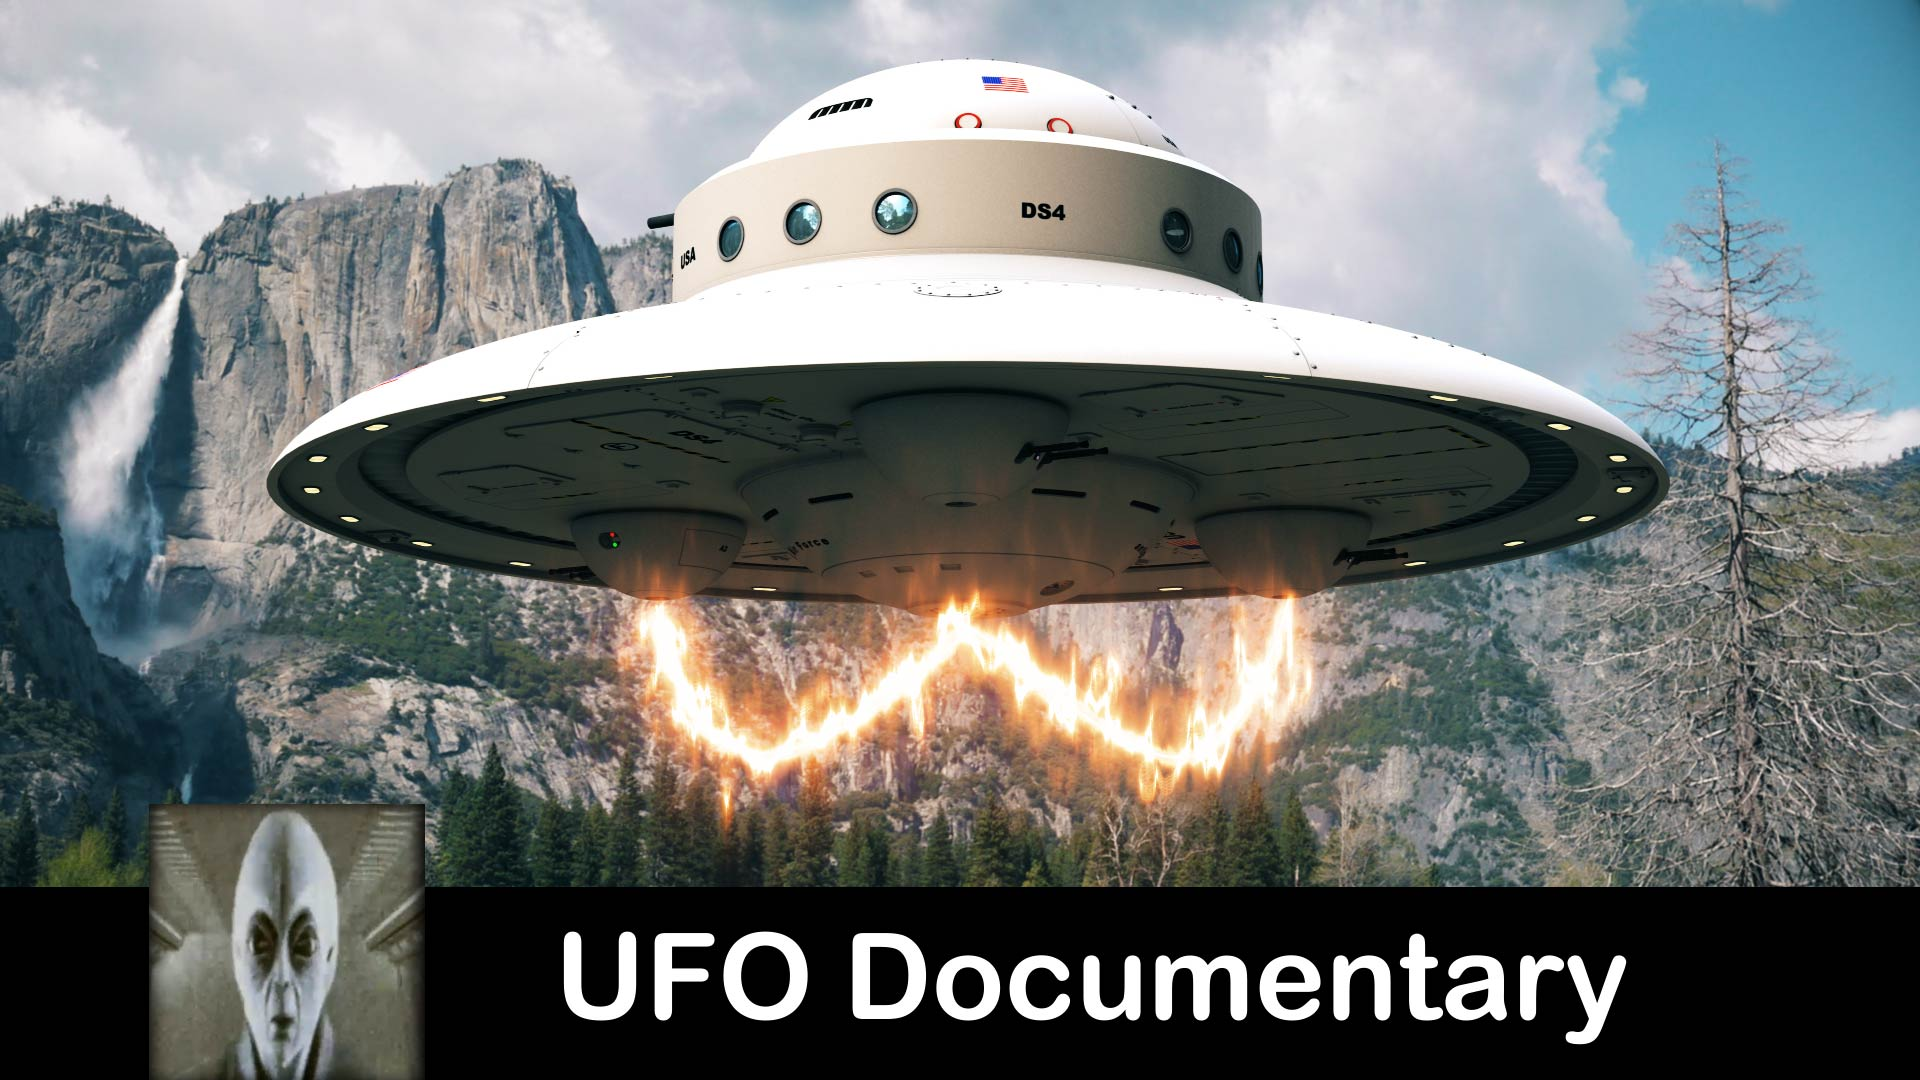 30th august yorkshire ufos - HD1920×1080